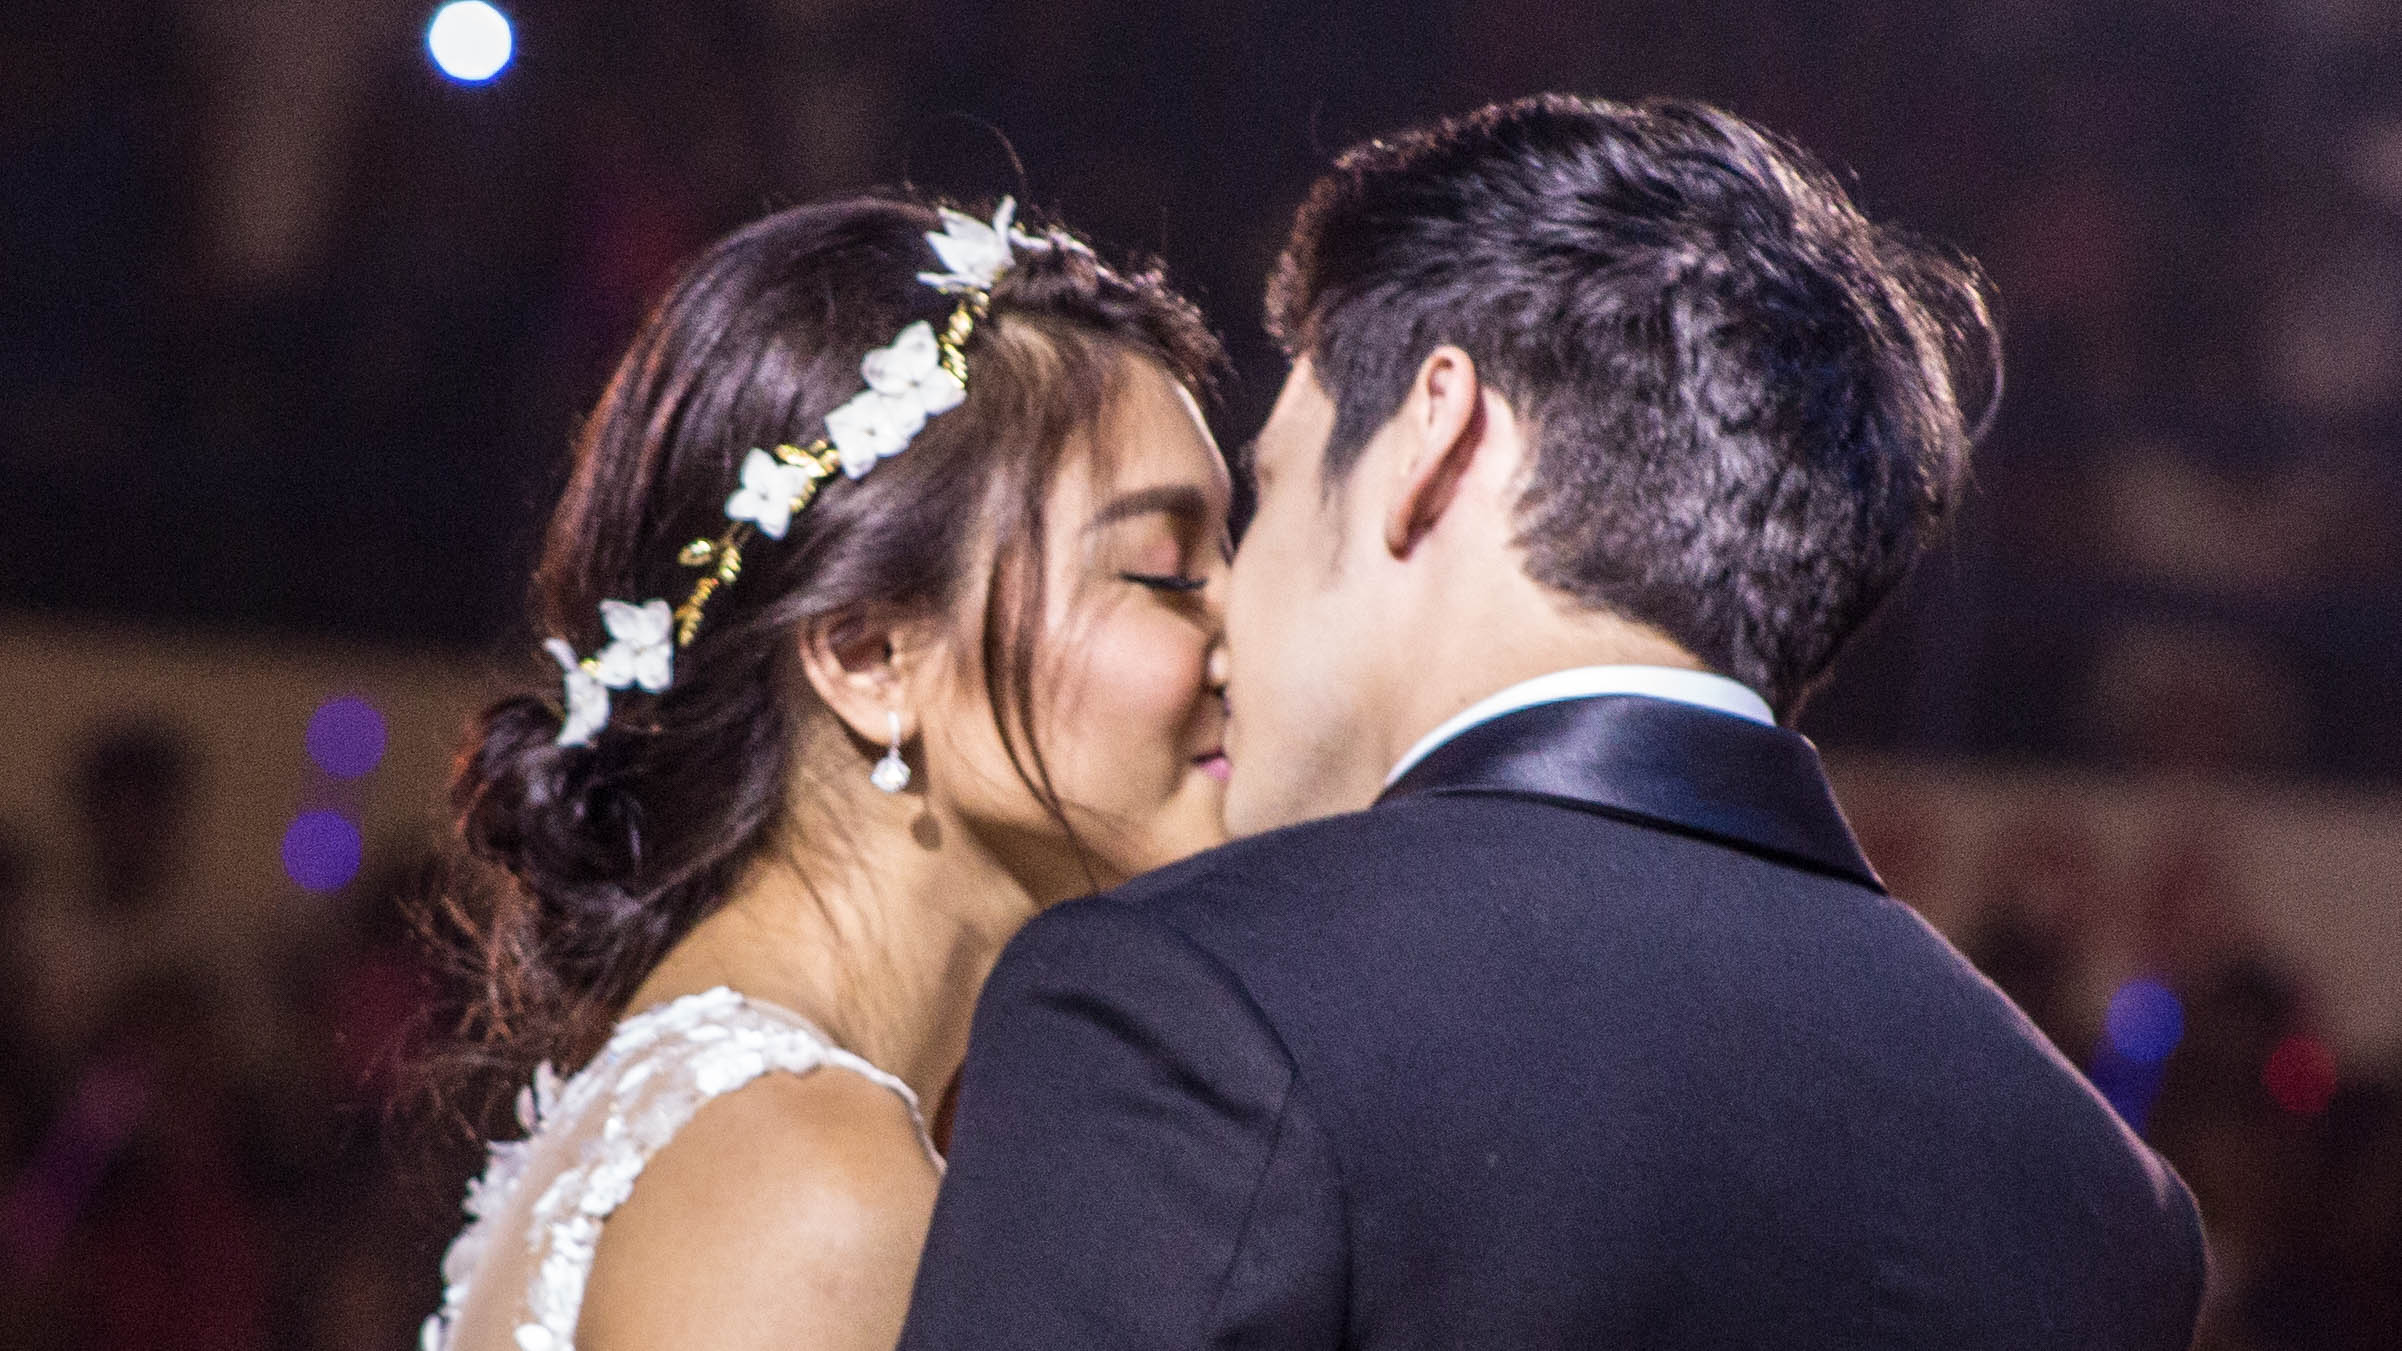 SEALED WITH A KISS. James Reid and Nadine Lustre share a smooch at the live viewing party of the finale of their show 'On The Wings of Love' in 2016. File photo by Paolo Abad/Rappler